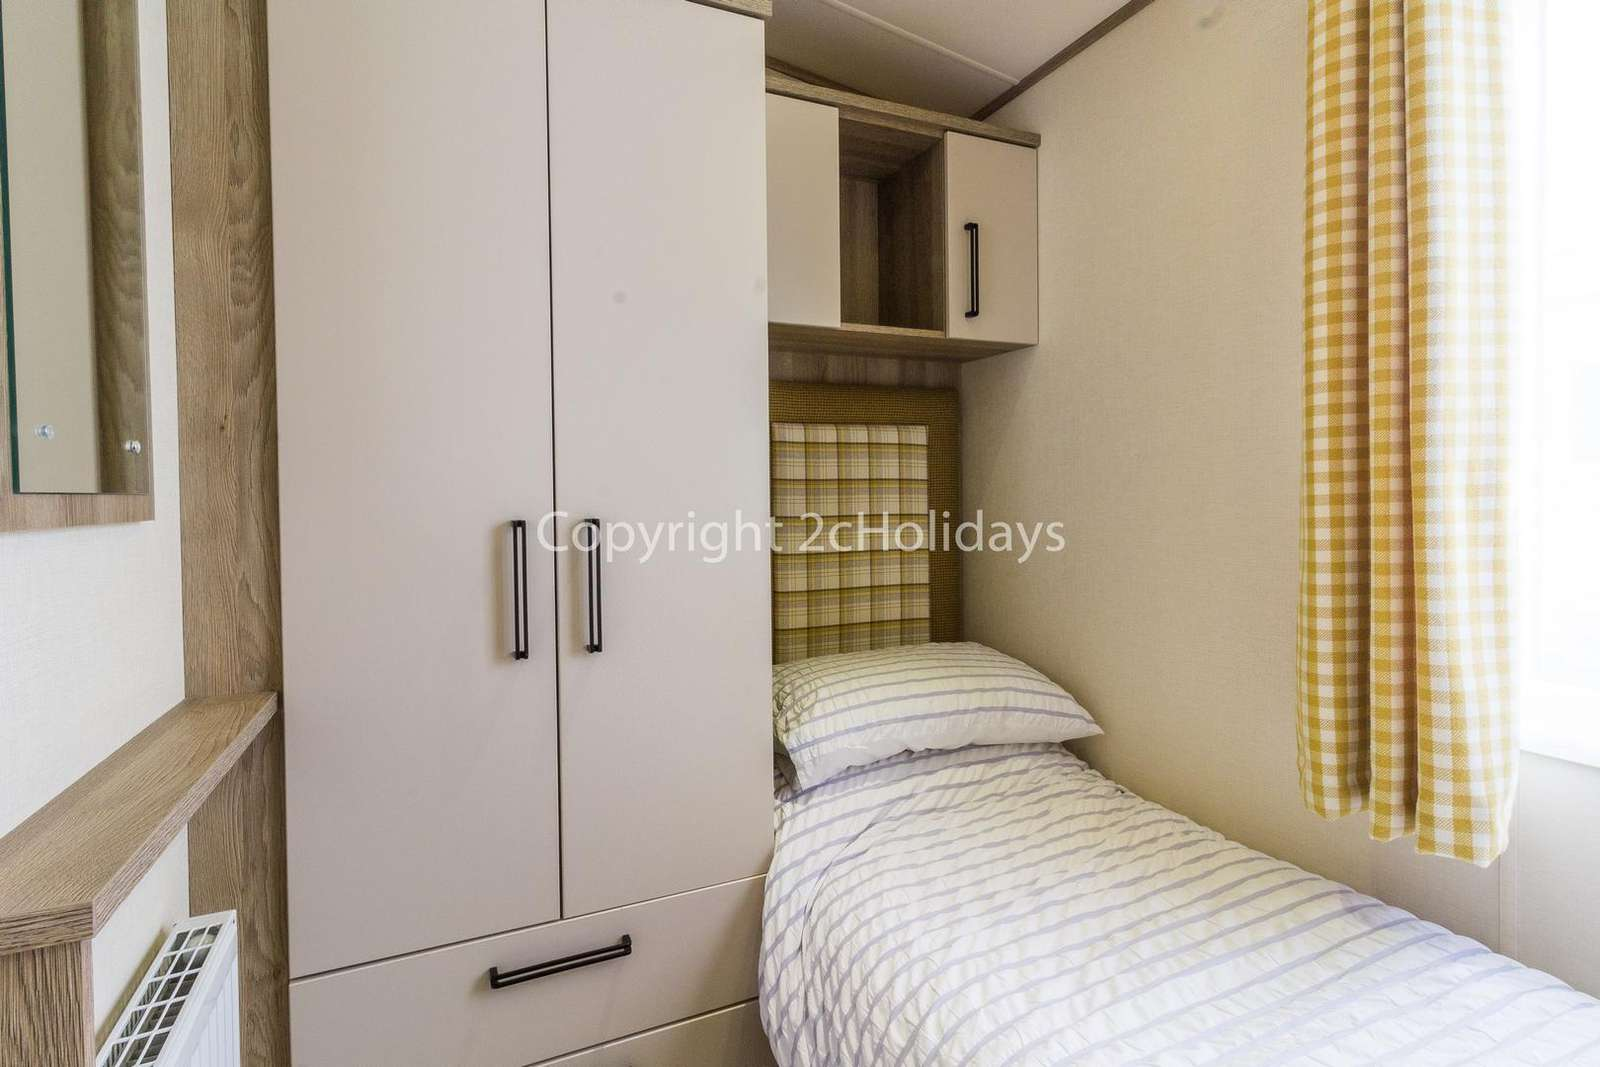 Theres plenty or storage in this twin bedroom!